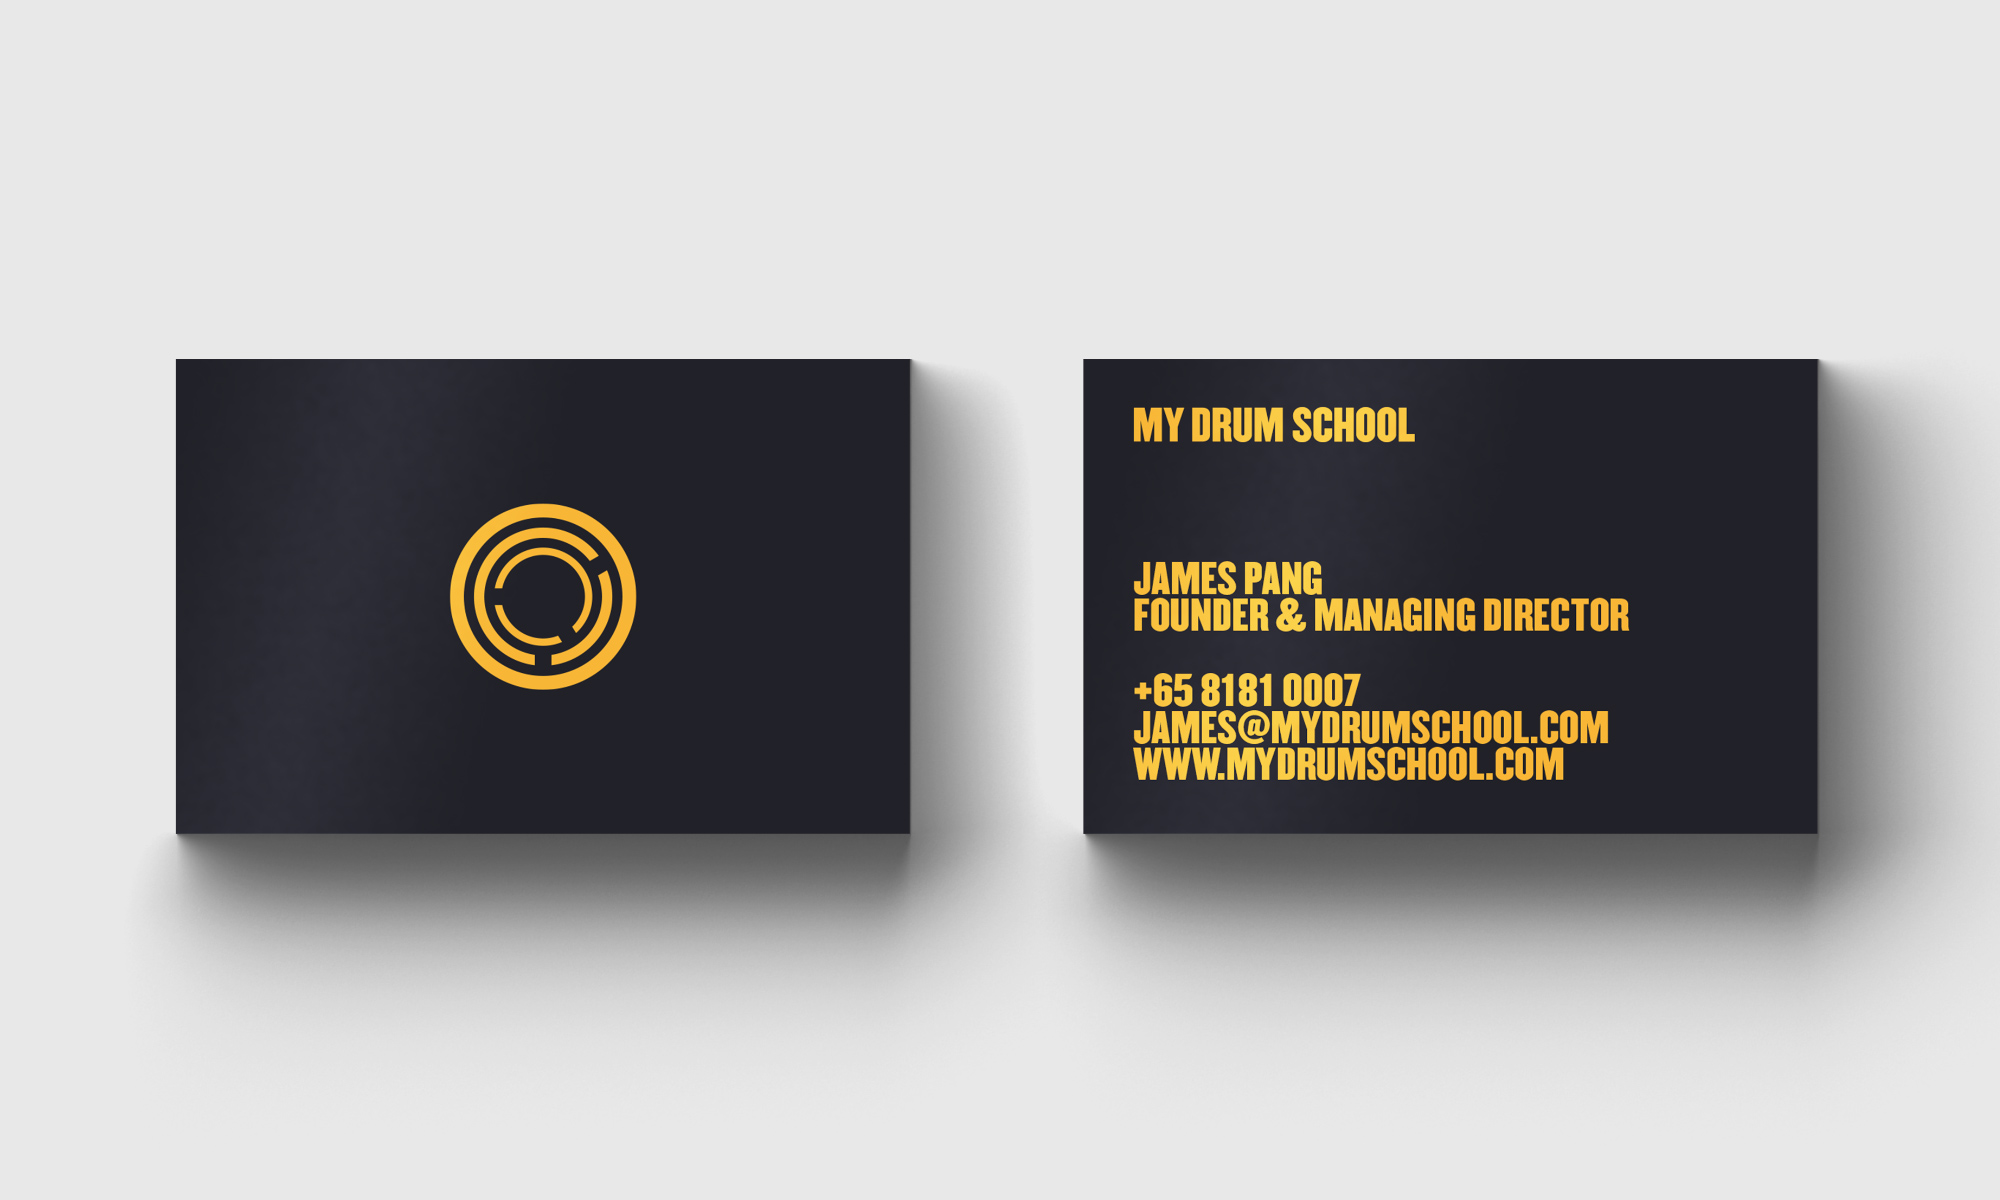 My Drum School business card